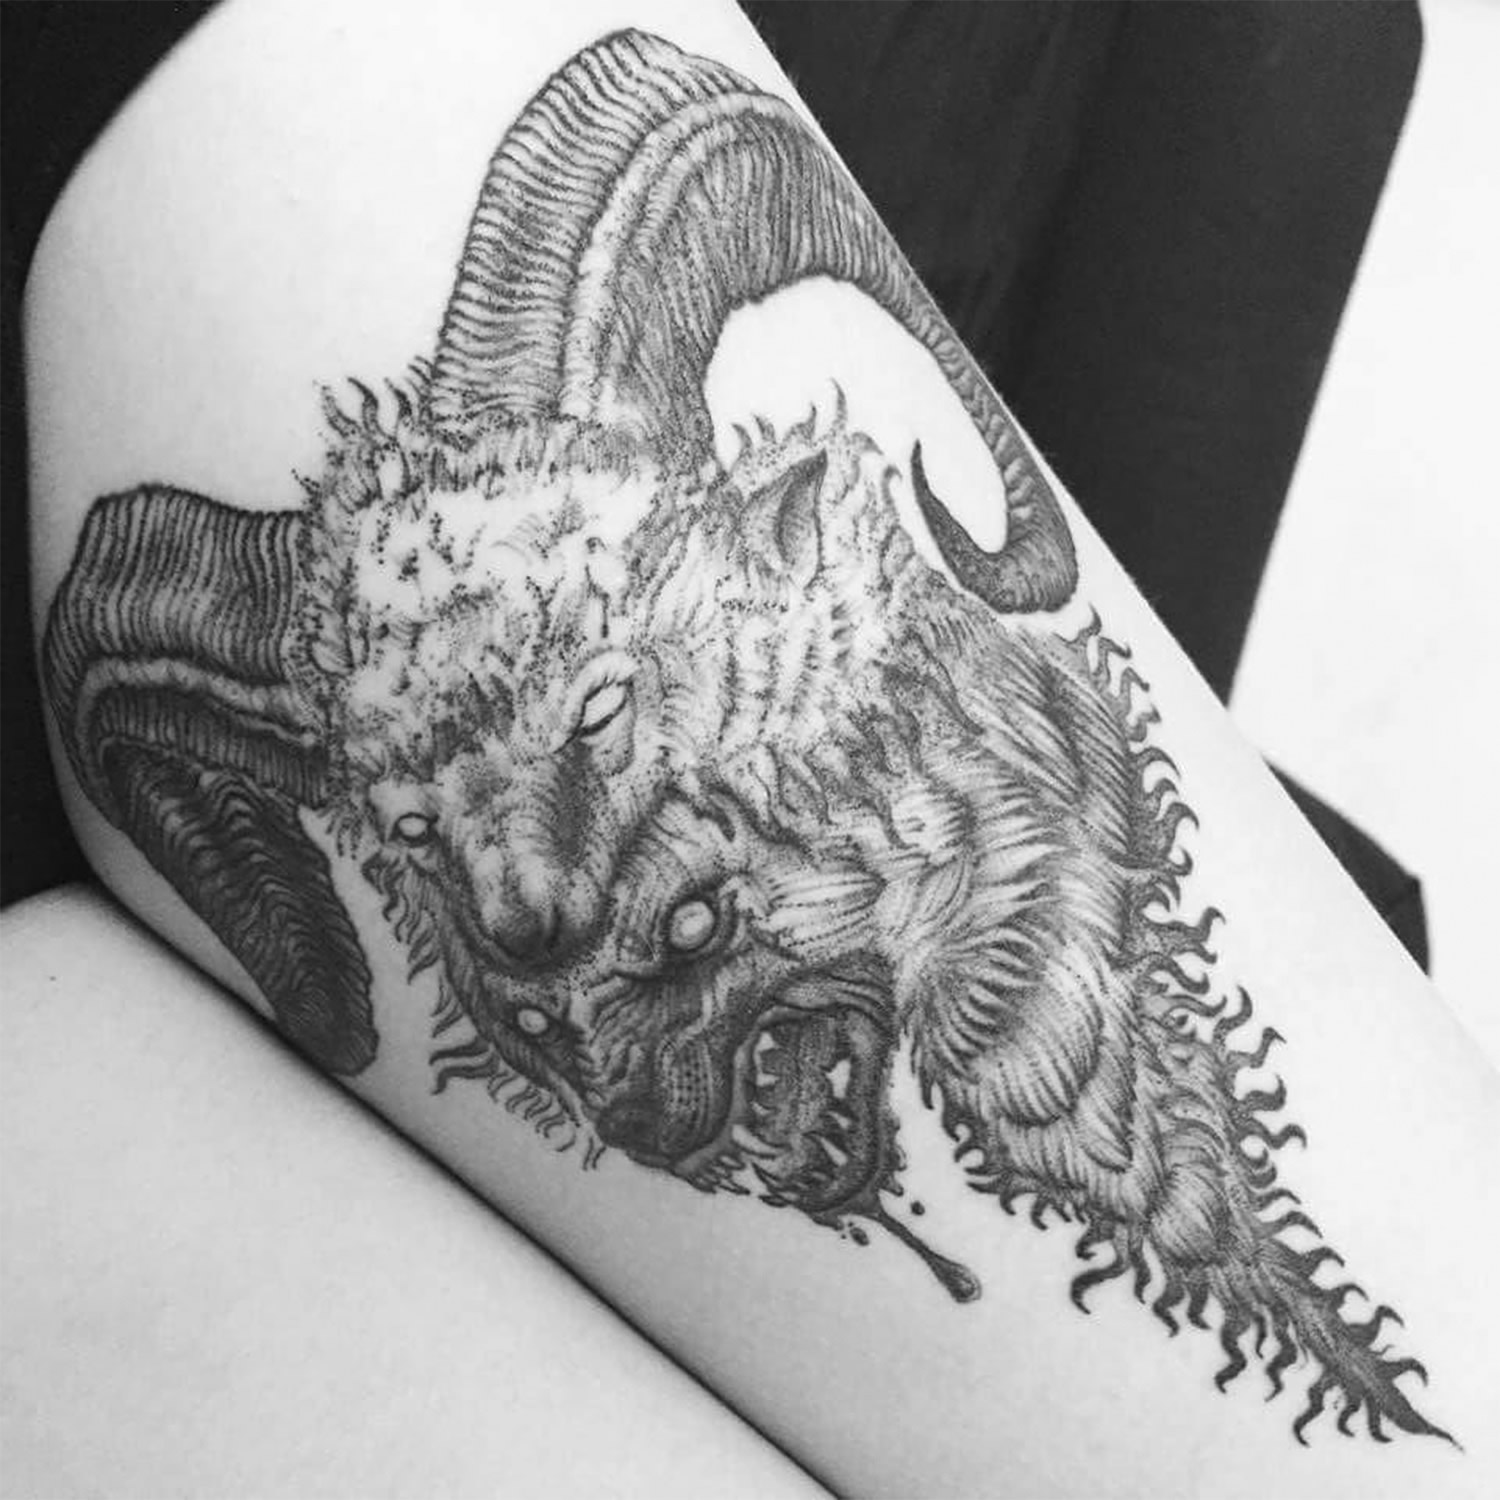 goat and wolf tattoo, dark art